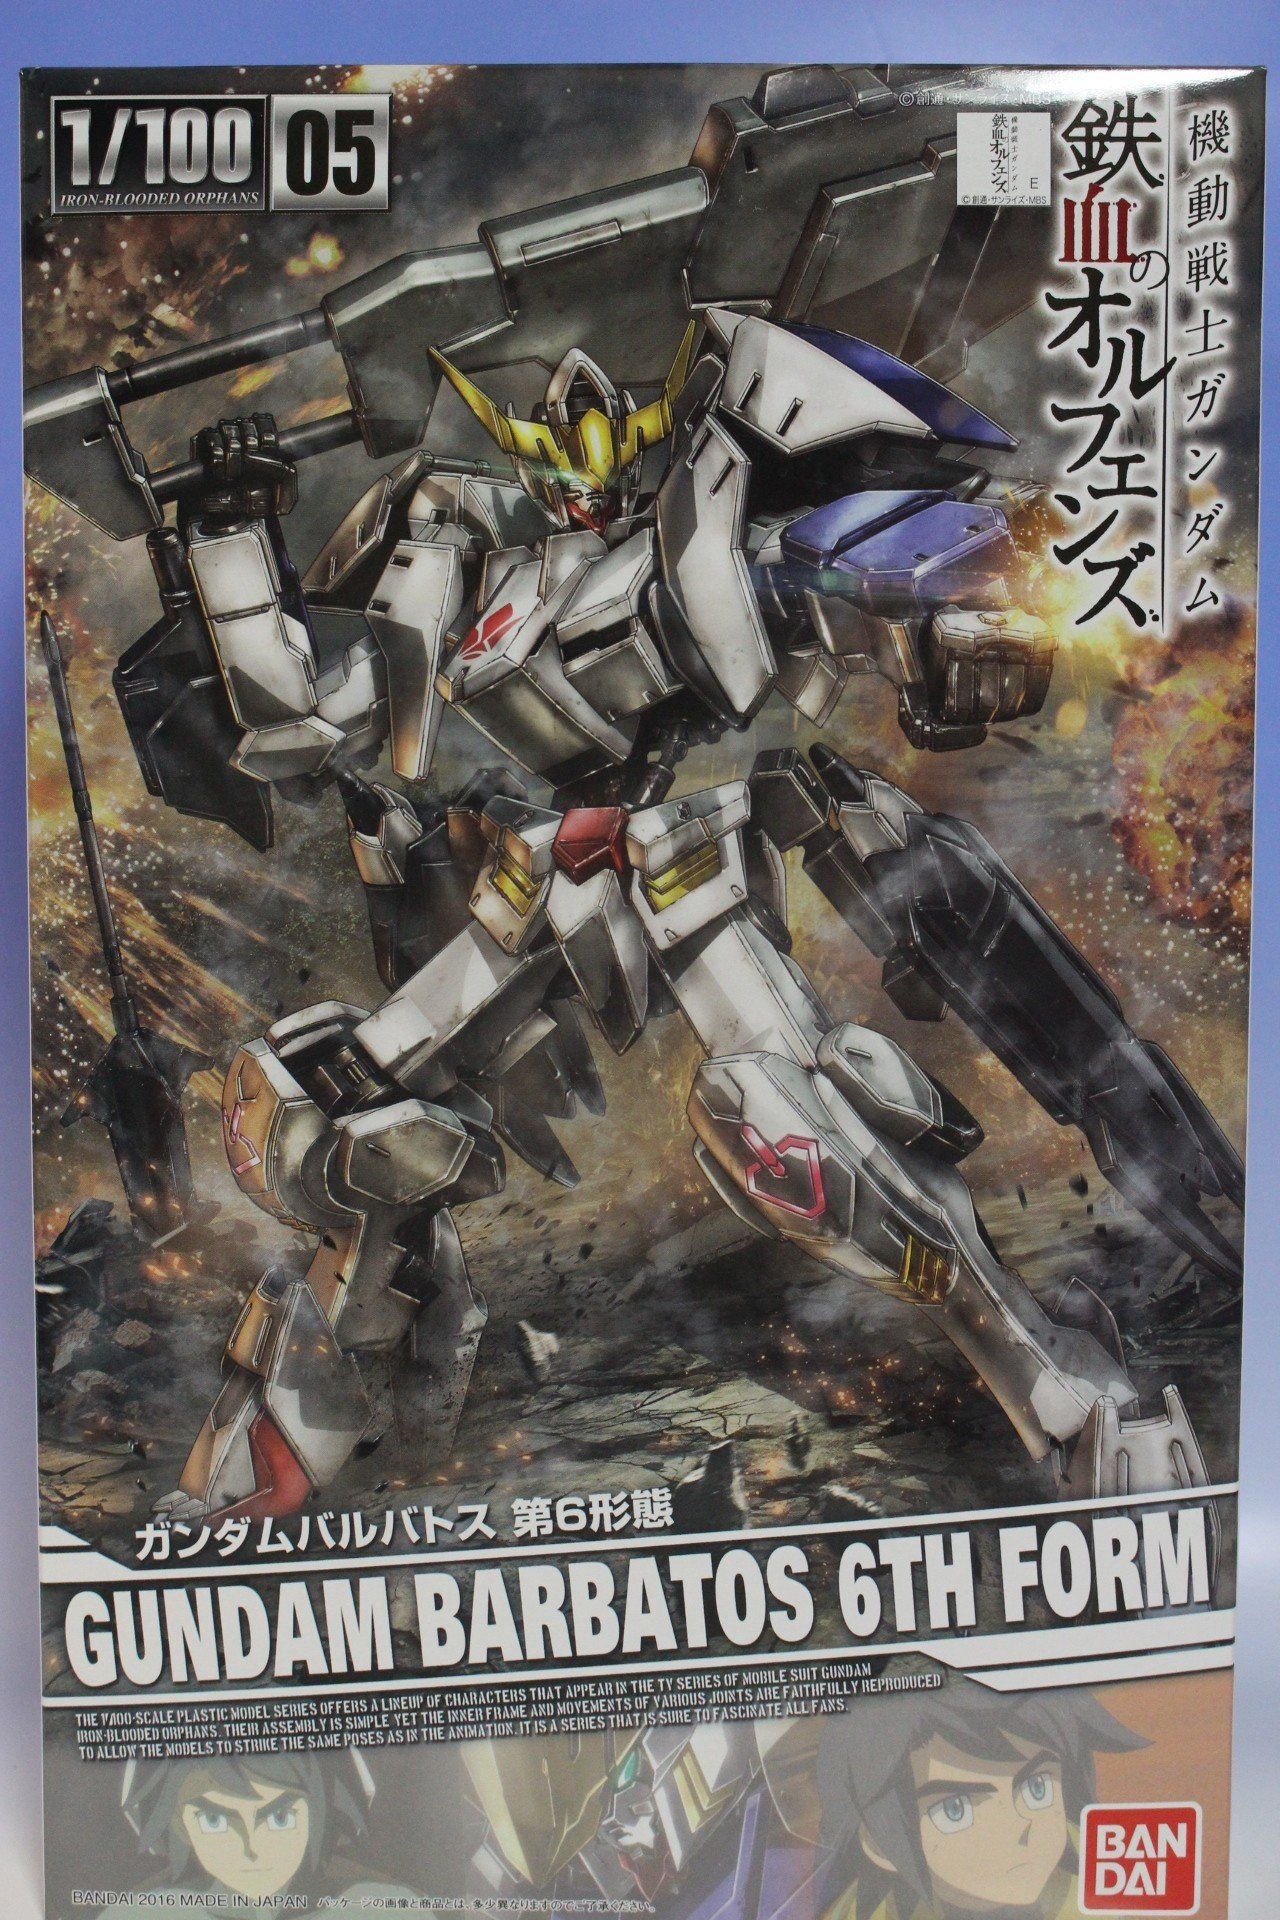 BOX OPEN REVIEW] 1/100 Gundam Barbatos 6th Form http://www.gunjap ...